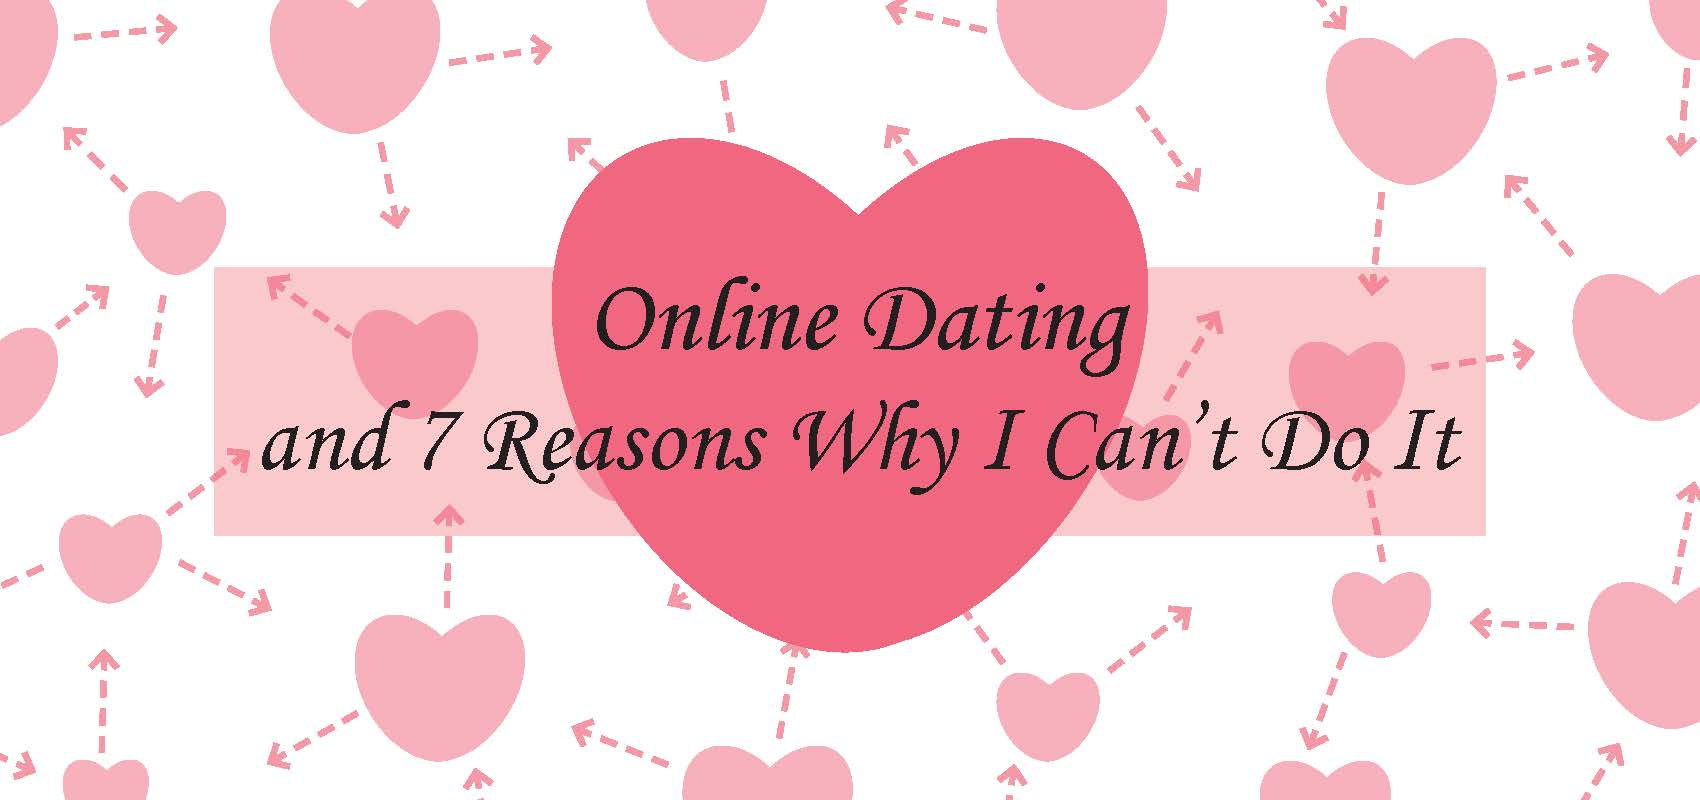 Online Dating and 7 Reasons Why I Can't Do It